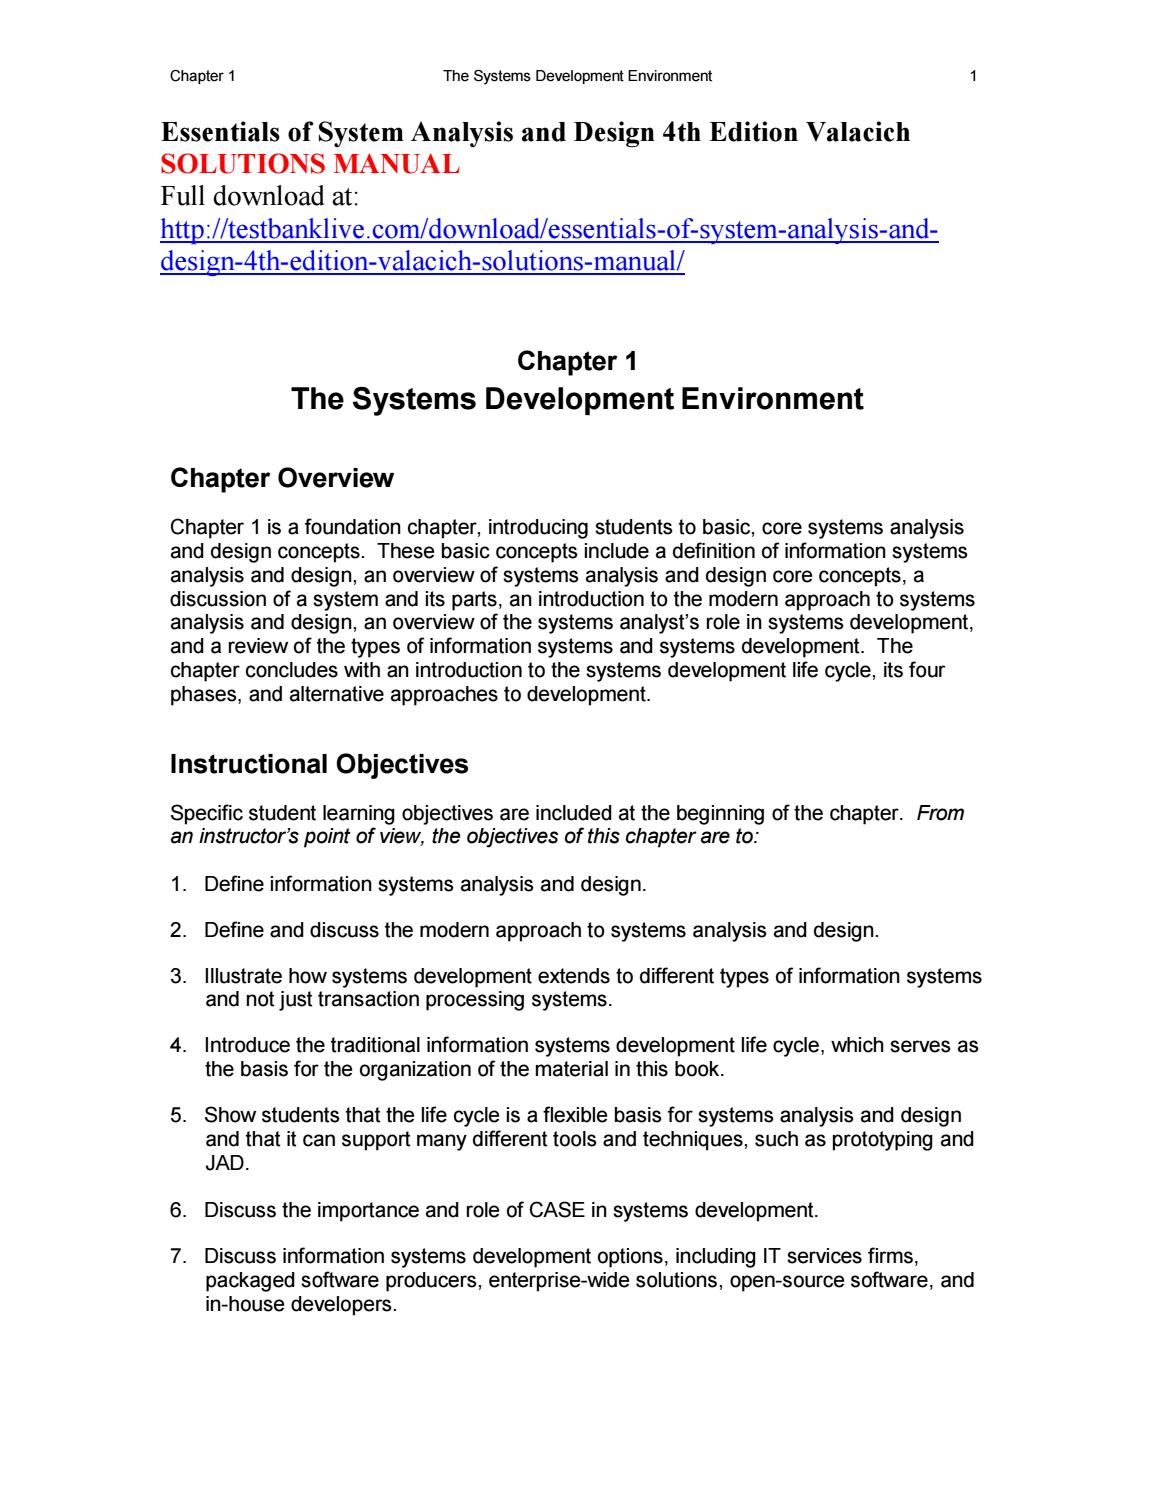 Essentials Of System Analysis And Design 4th Edition Valacich Solutions Manual By Zszs111 Issuu